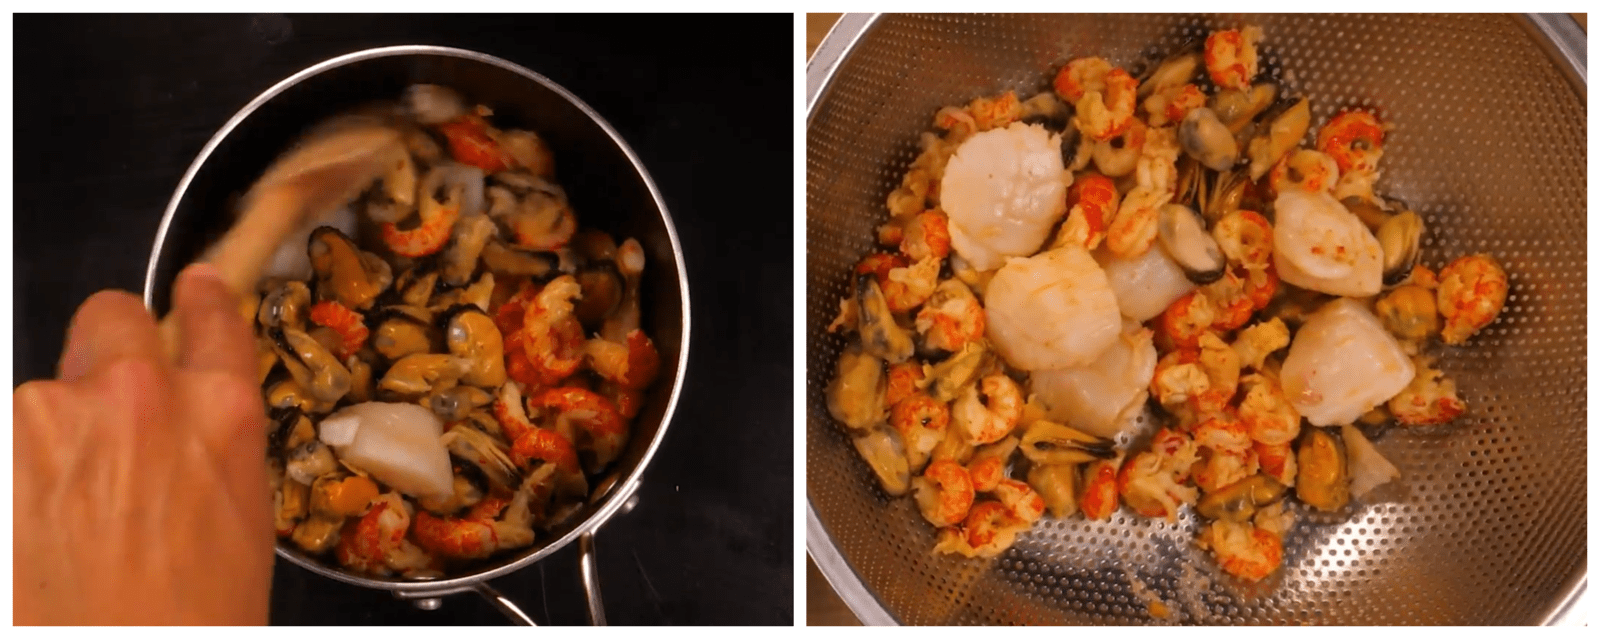 cooking seafood in butter